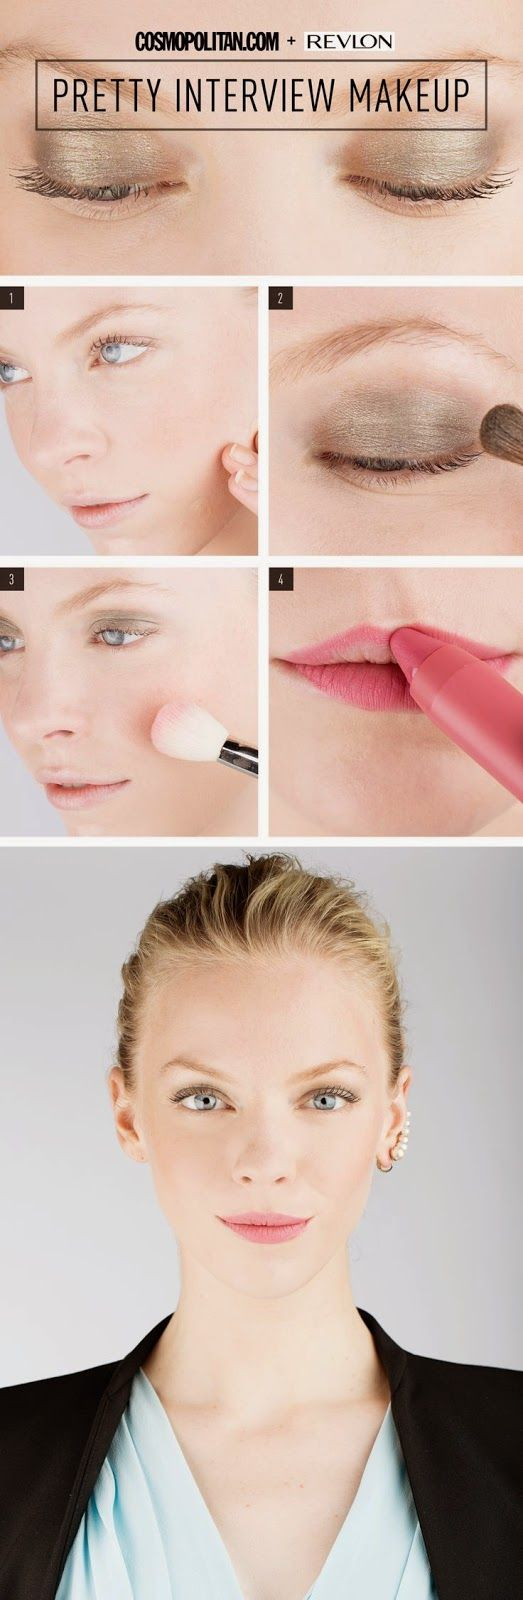 Pretty Interview Makeup   Makeup artist Gigi Shaker shows you exactly how to create the perfect interview look that's pretty yet professional.  FormalHealth